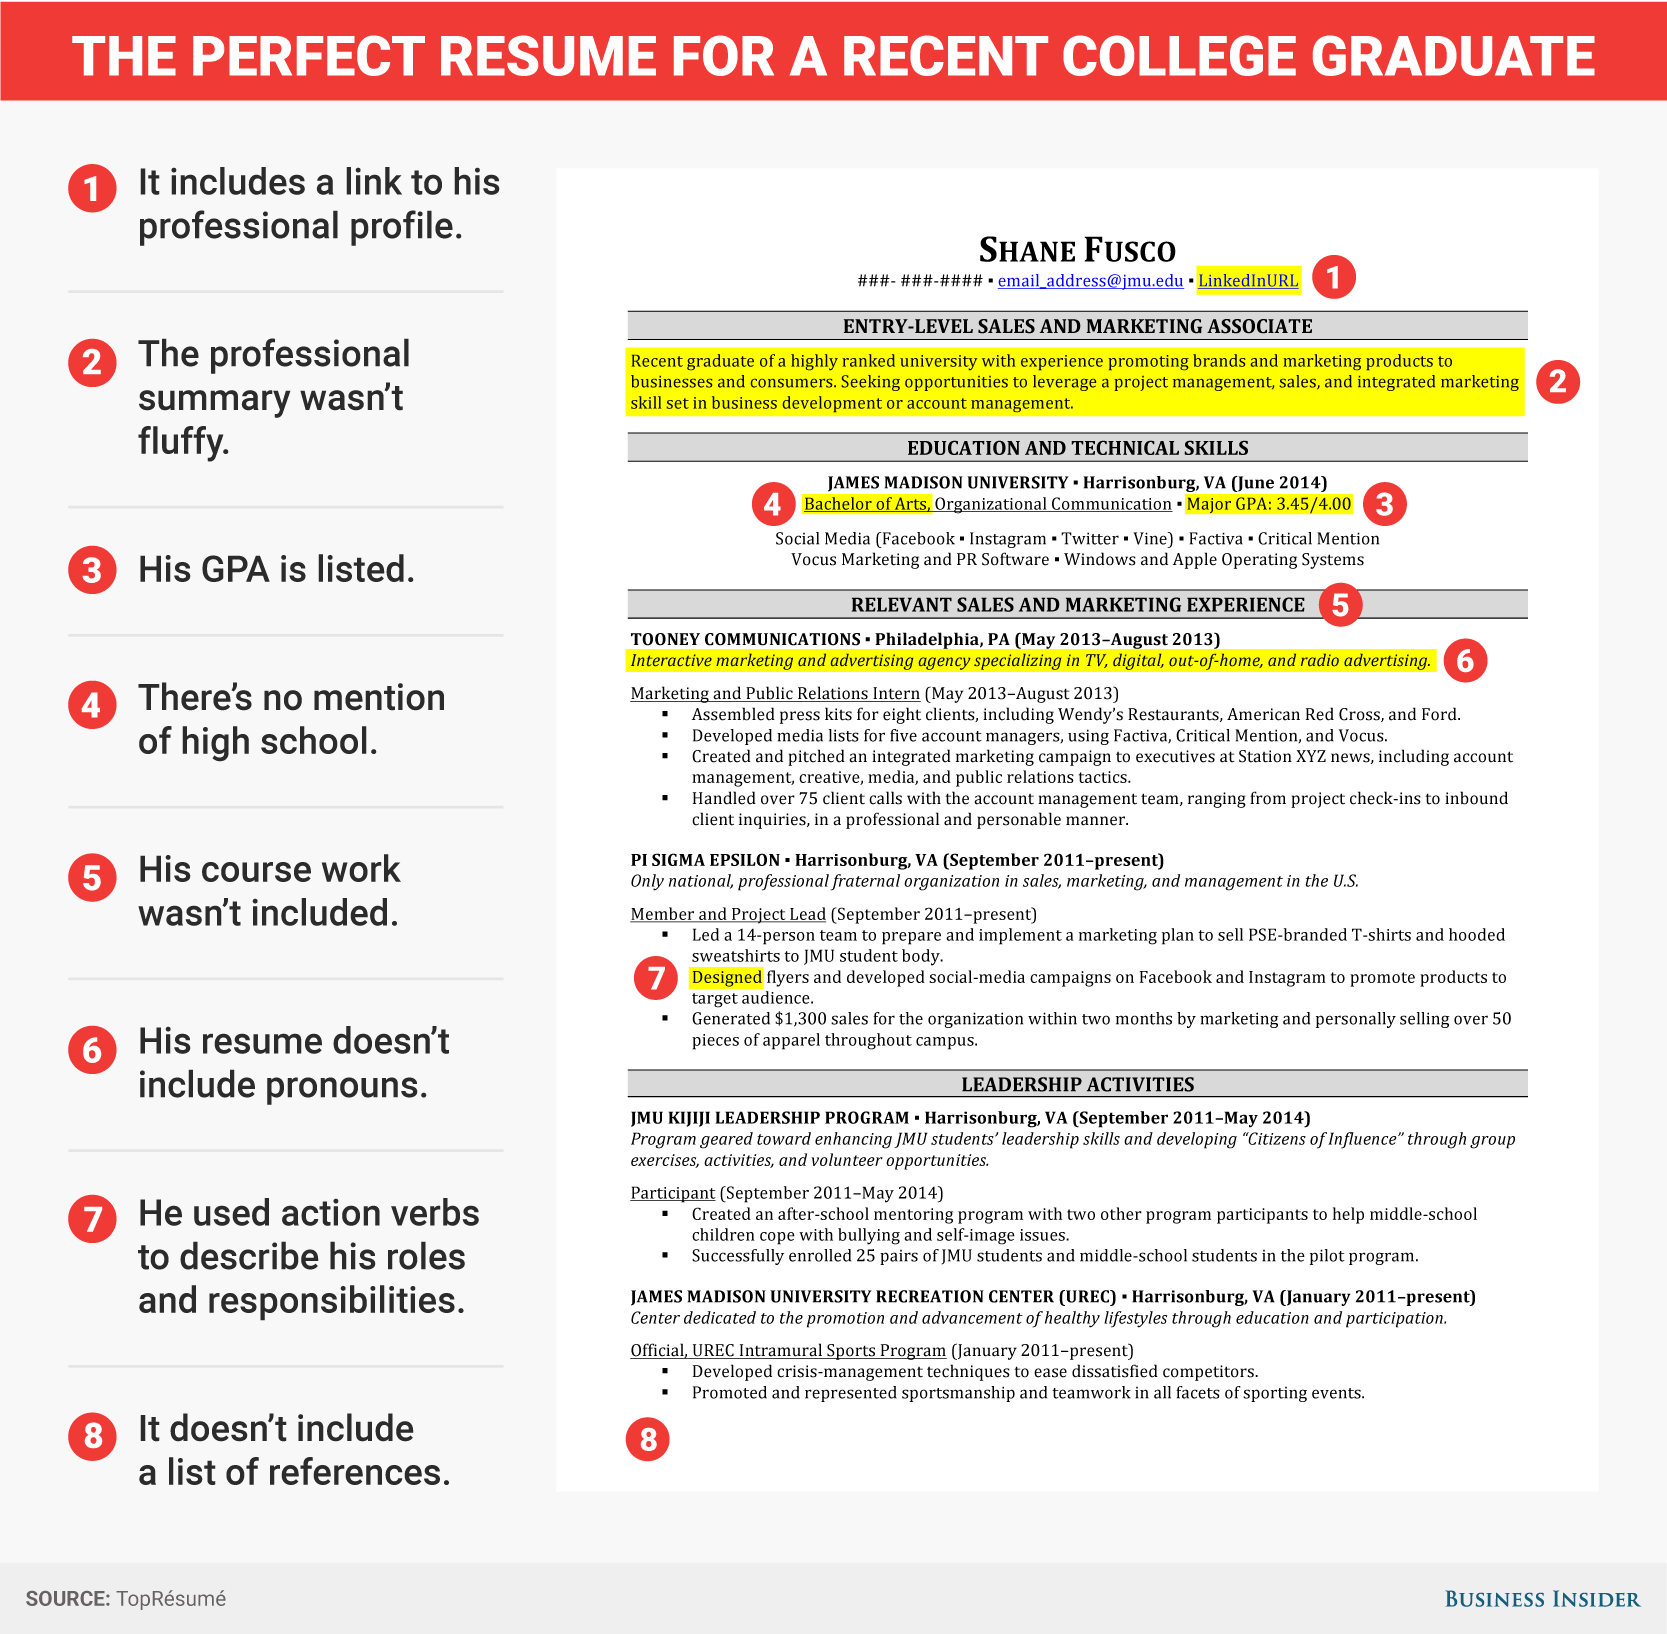 Resume Templates For Recent College Graduates 8 Of The Best Wallets You Can Buy For Under $30 Right Now  The O